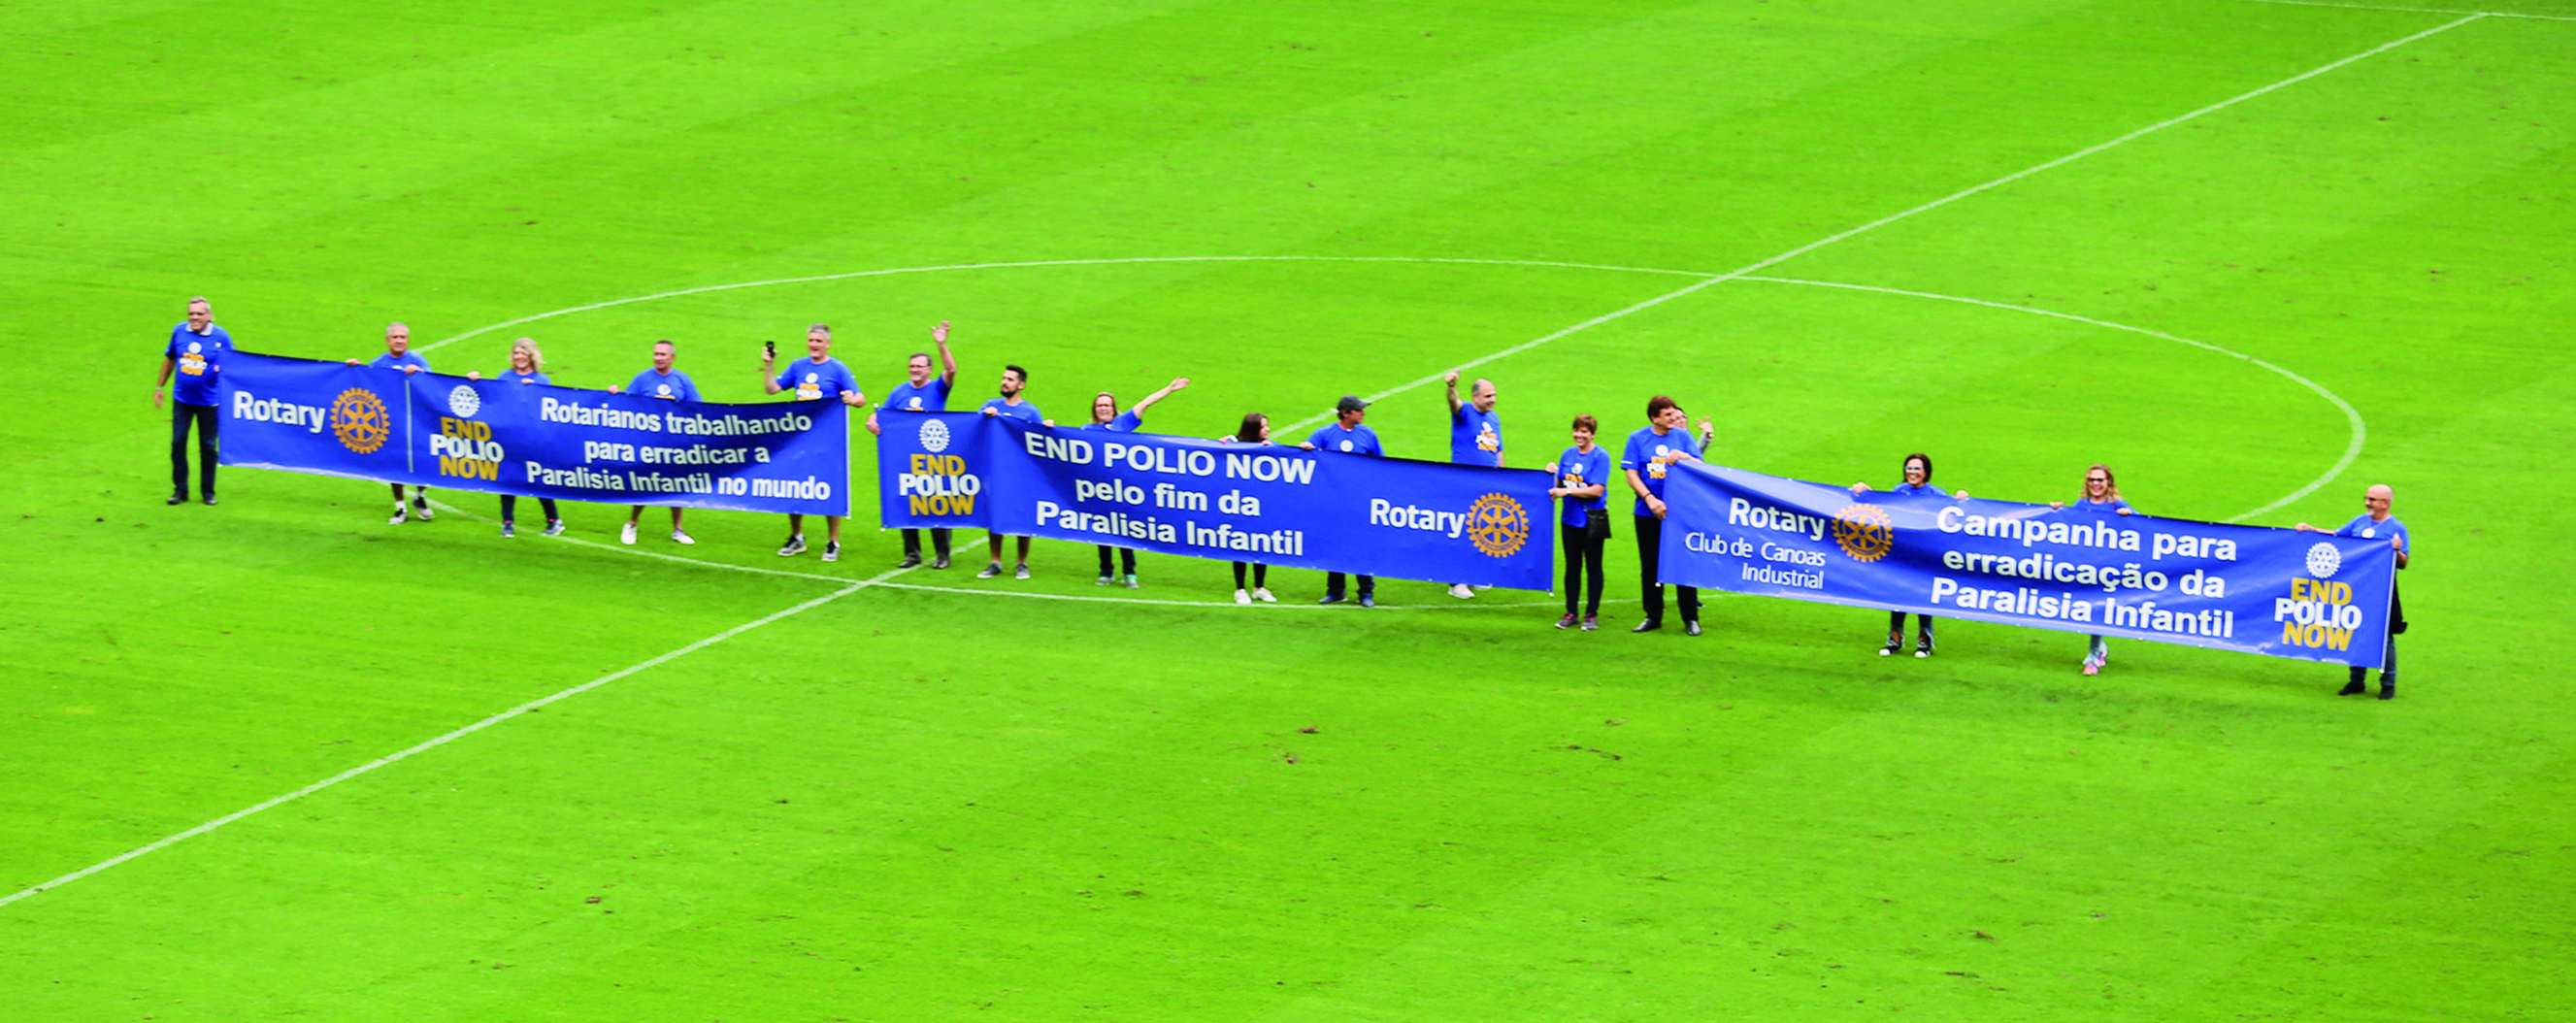 Rotary members in District 4670 carried an End Polio banner out on a football field.